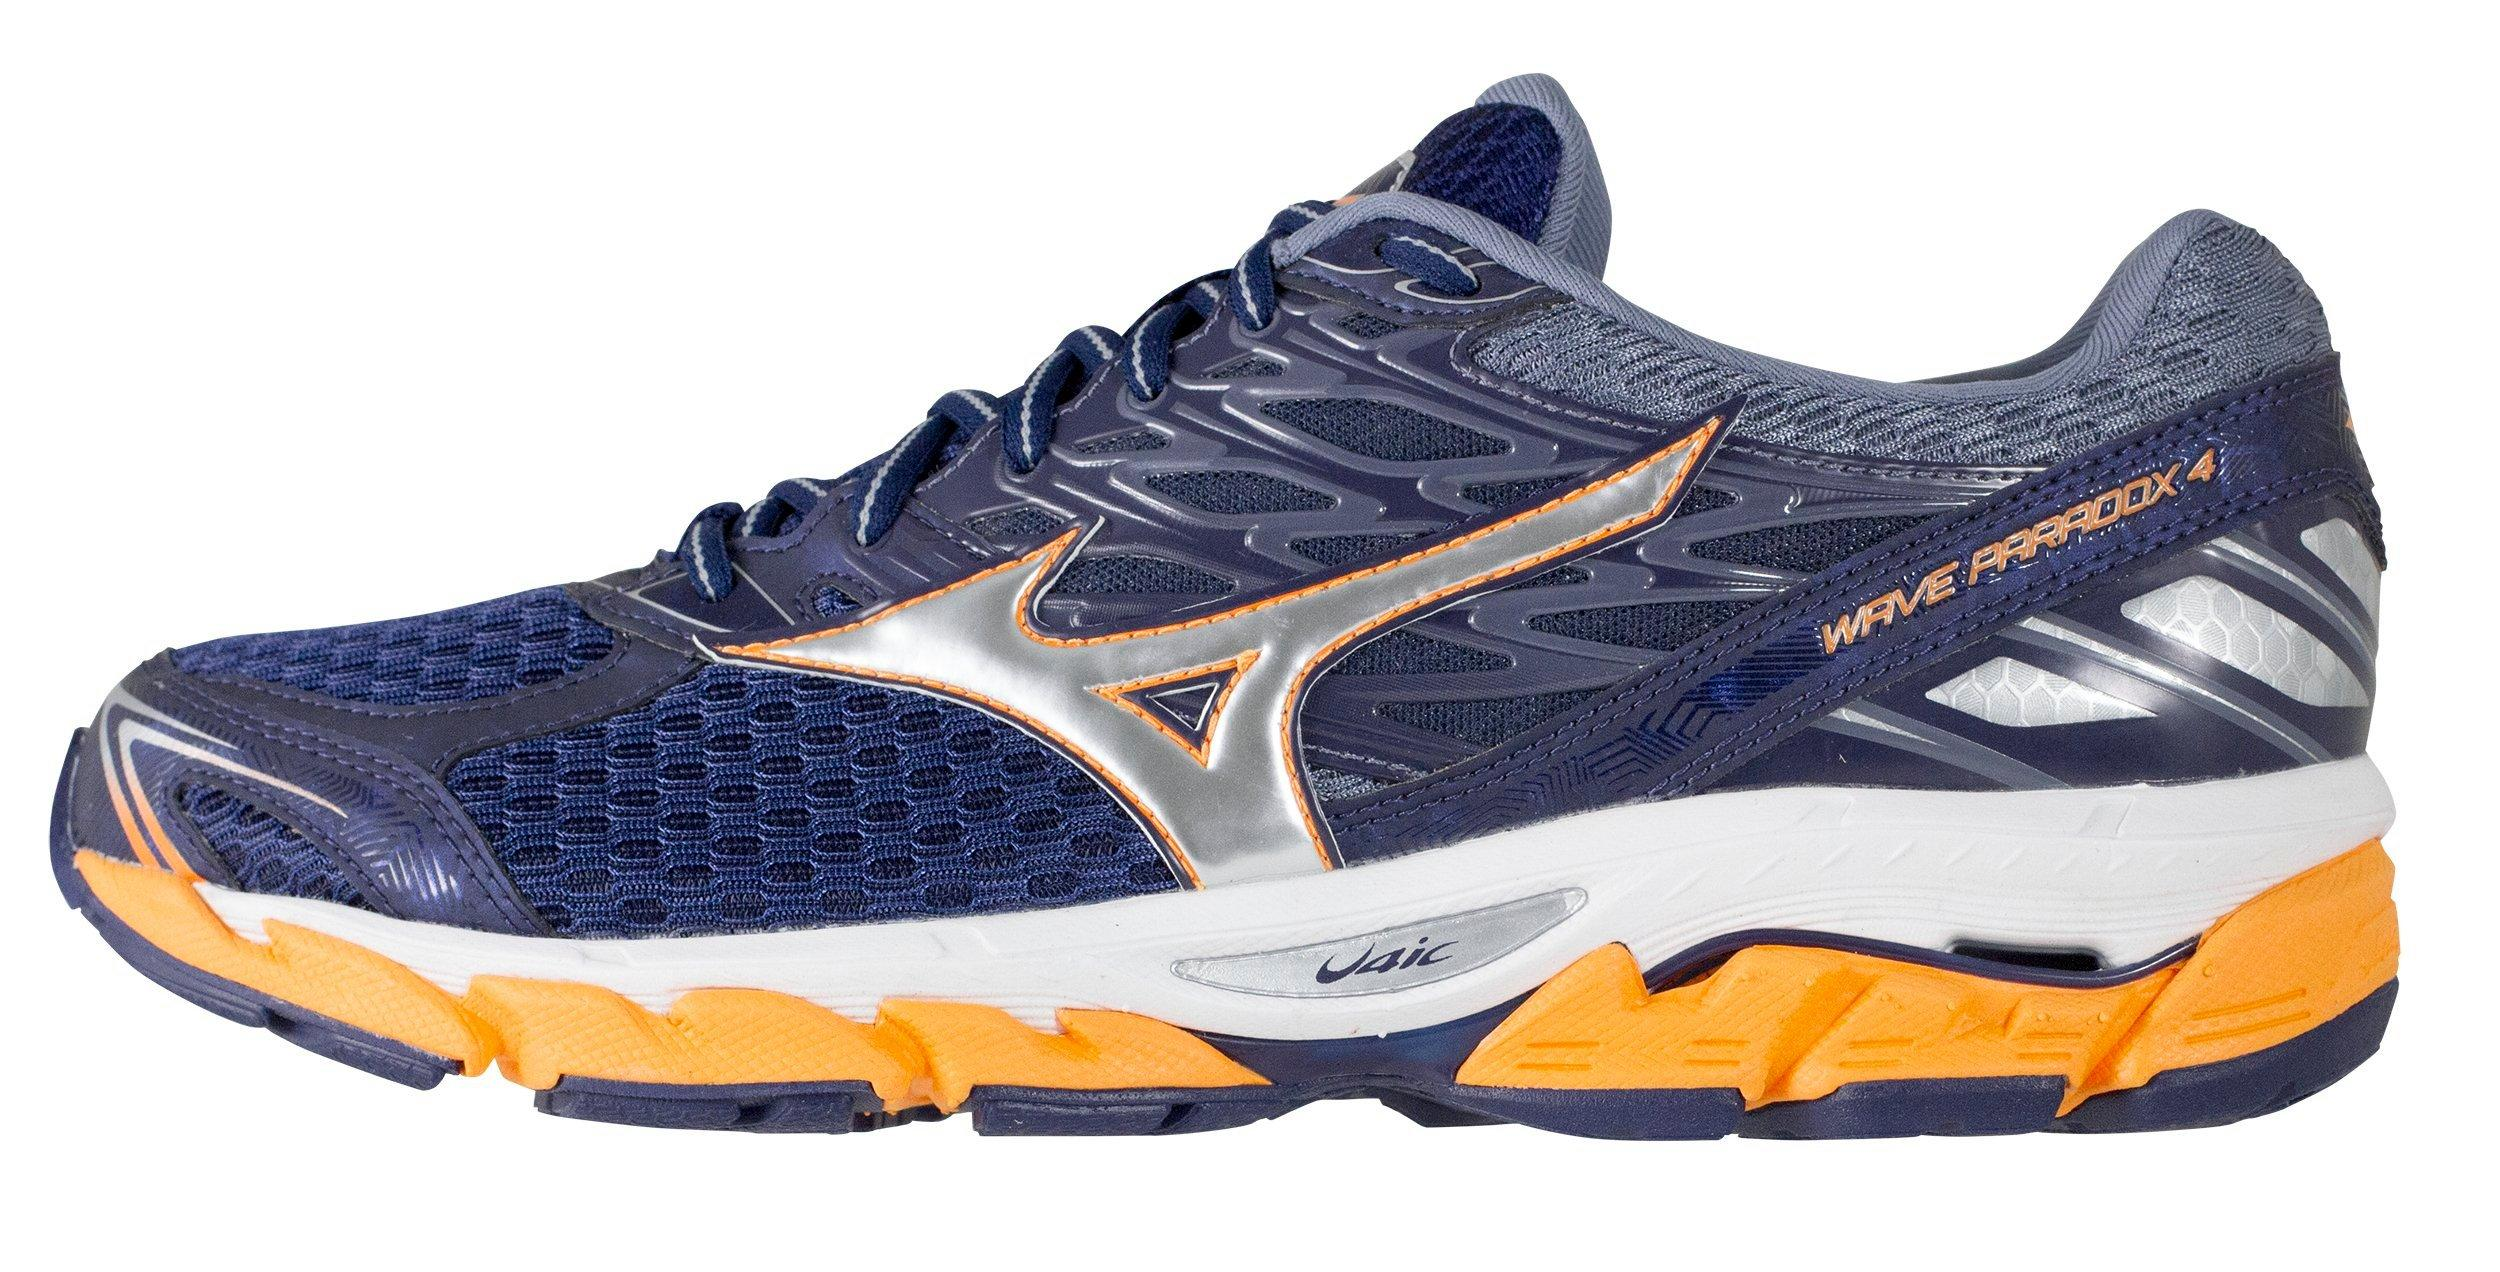 Mizuno Mens Running Shoes - Men's Wave Paradox 4 Running Shoe - 410932